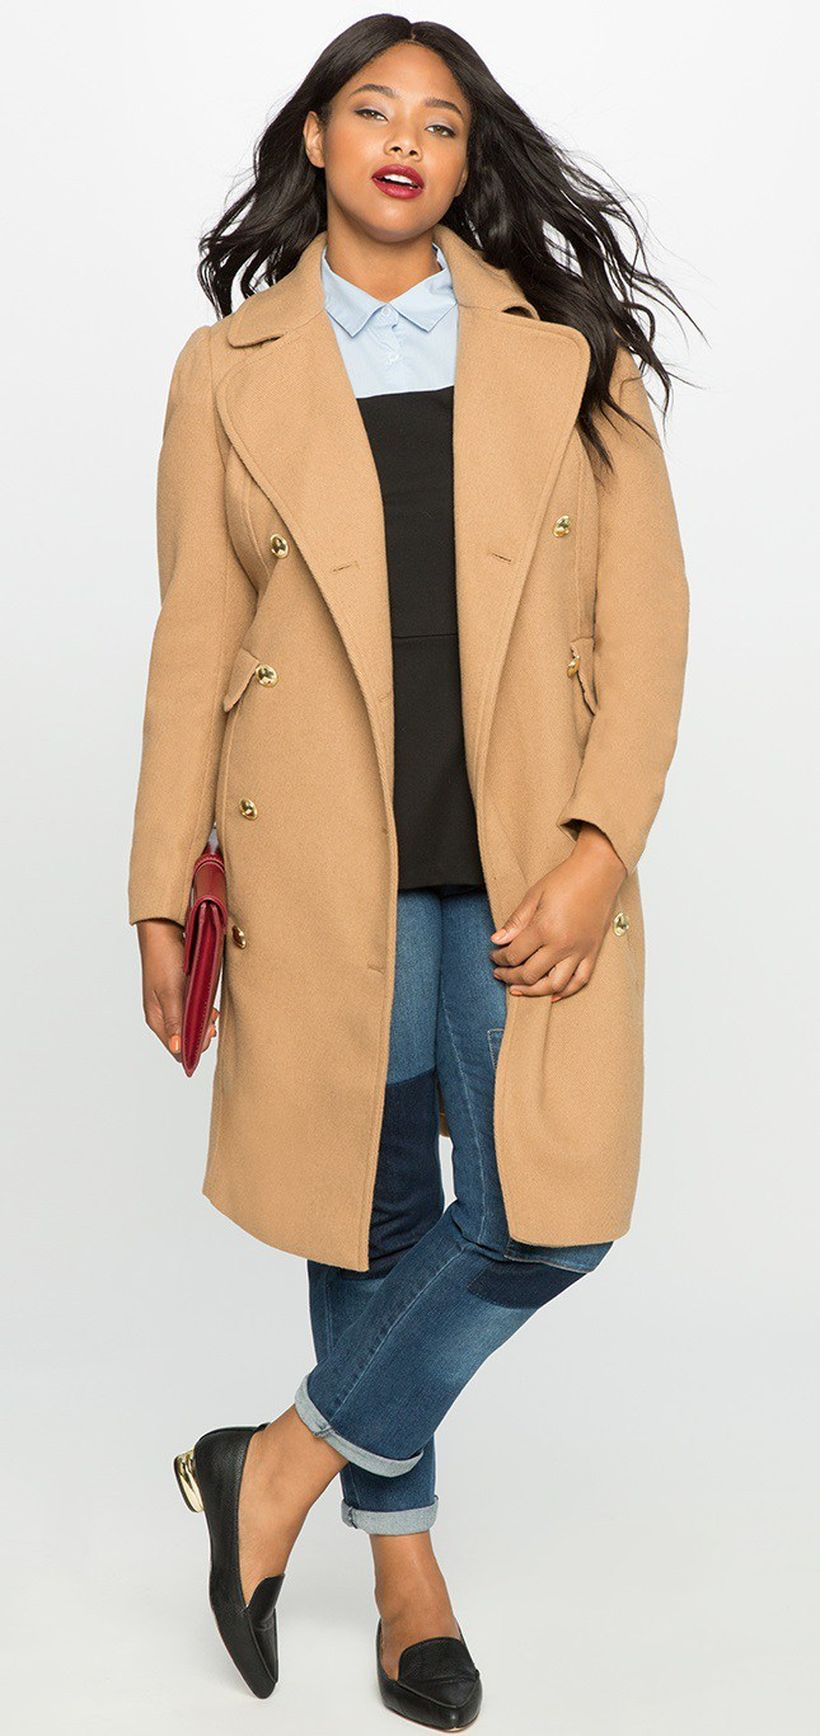 Stylish plus size outfits for winter 2017 54